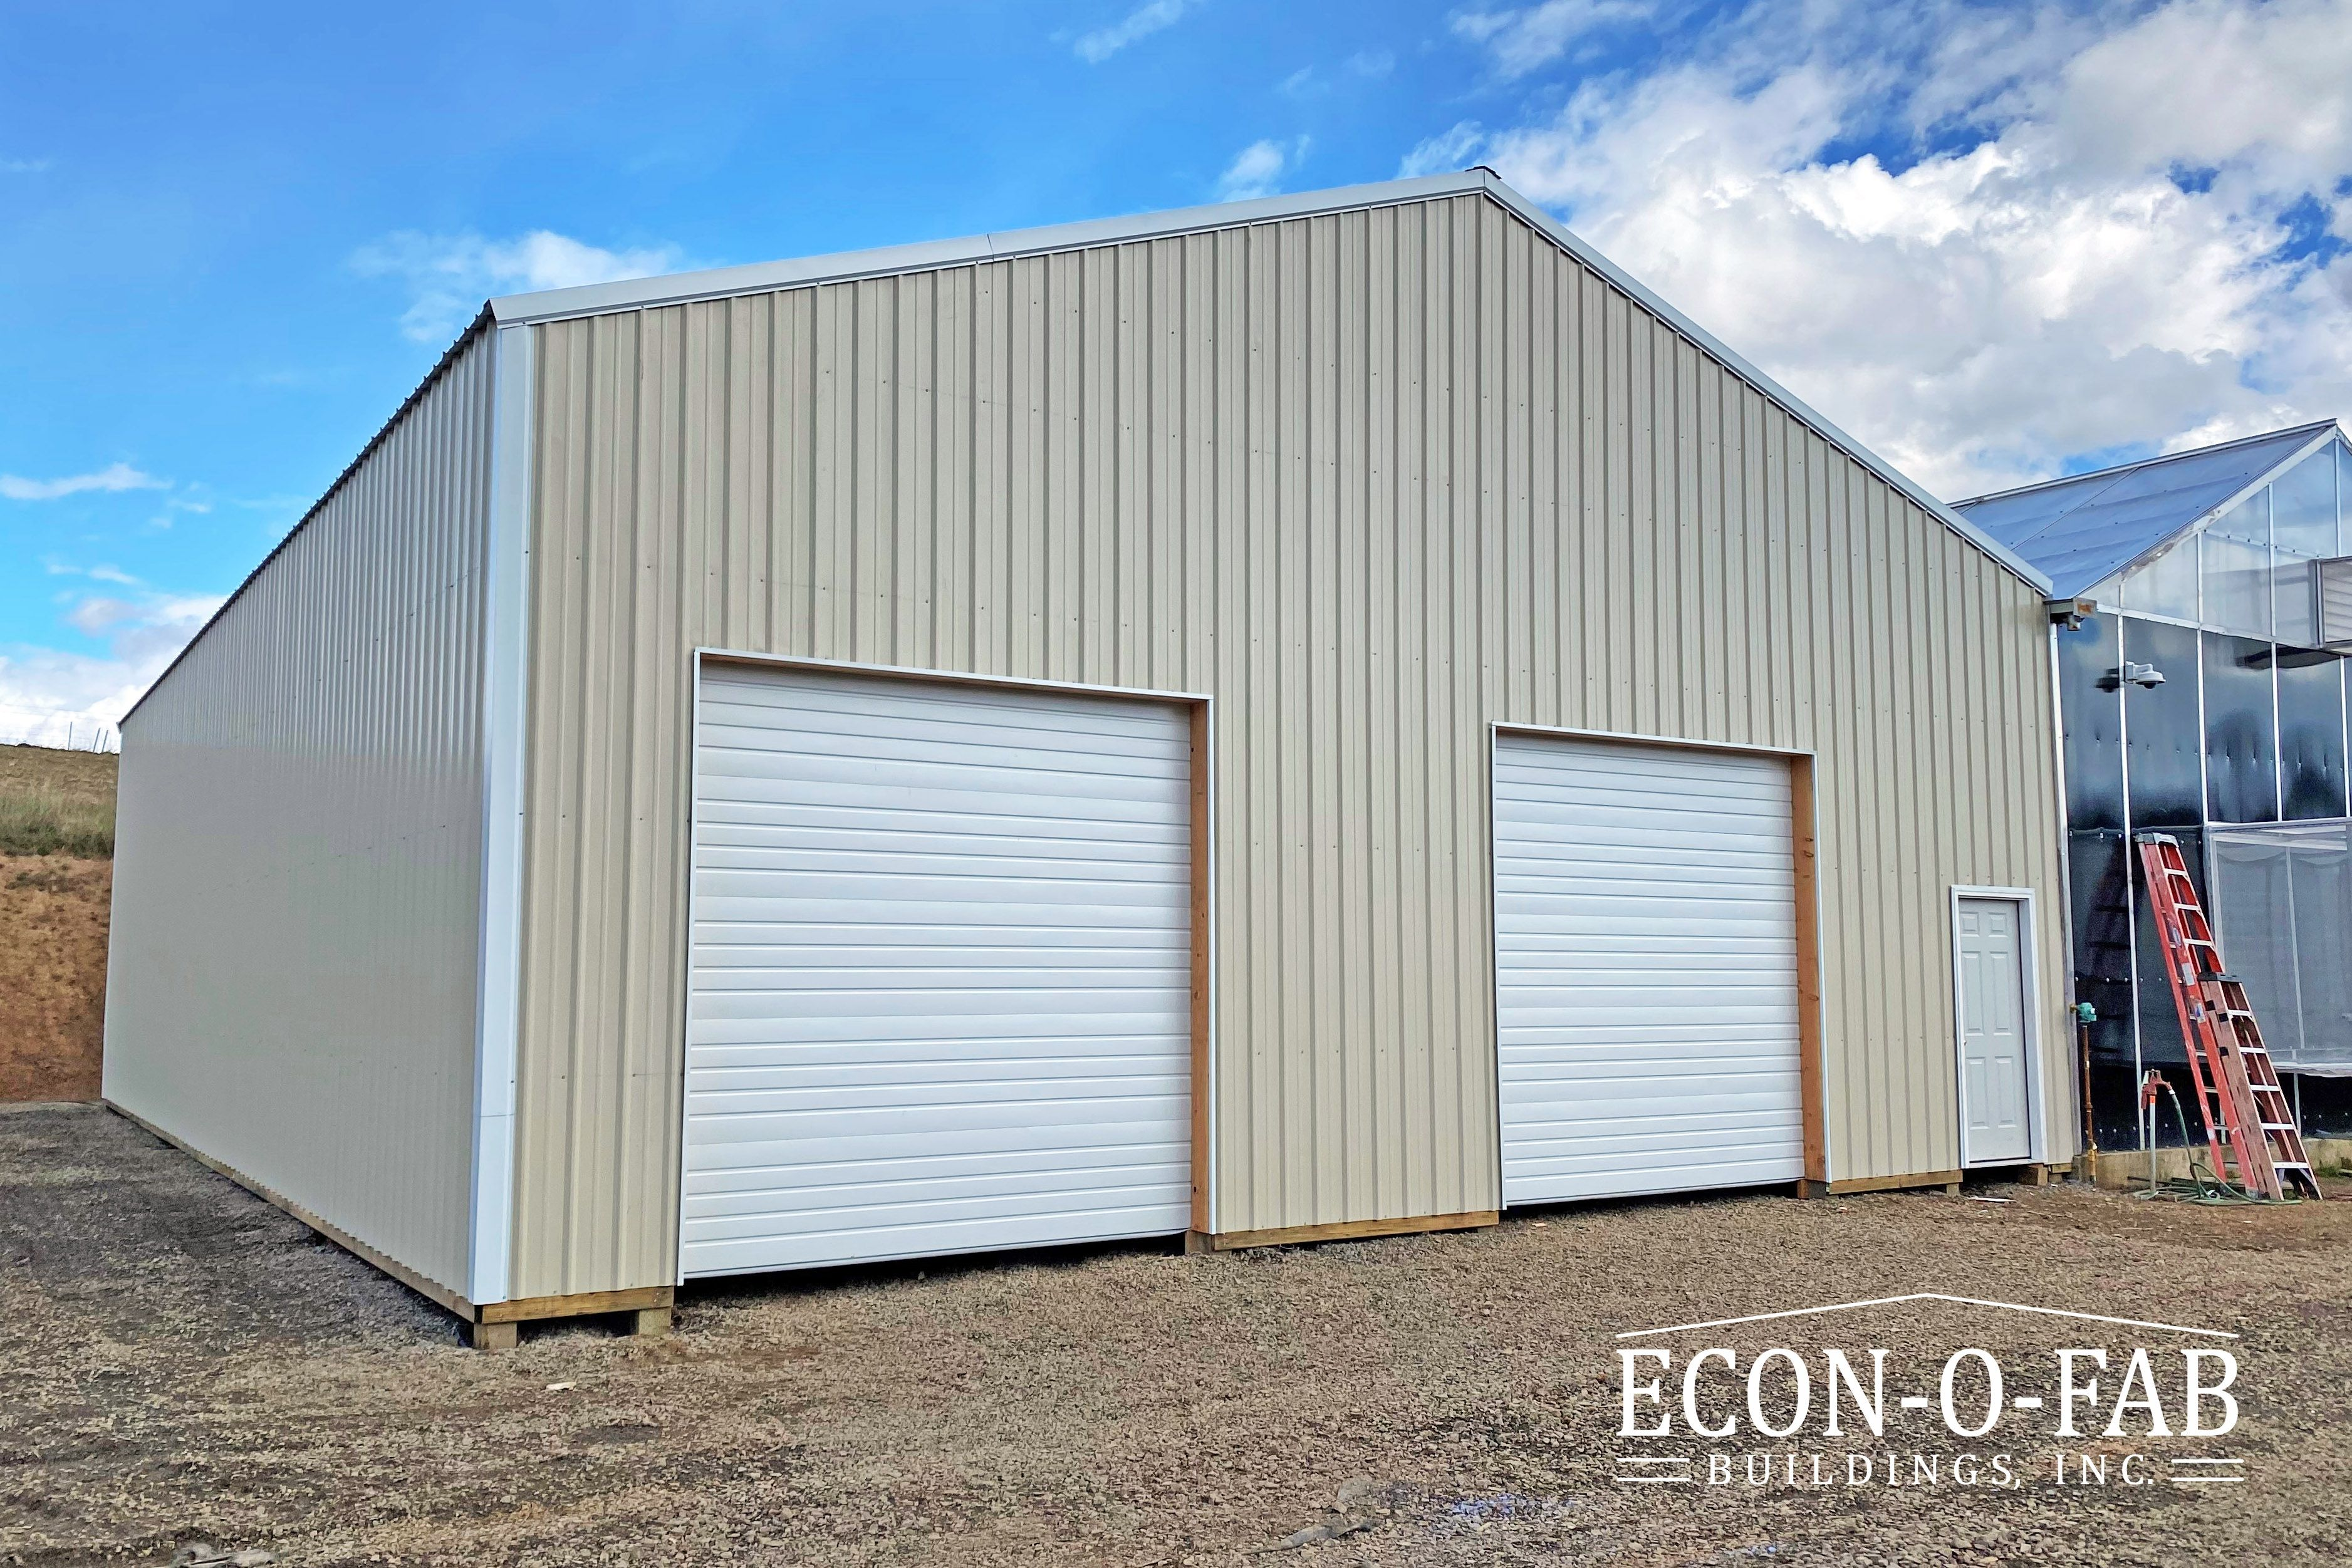 40 X 60 X 16 Ag Building In 2020 Pole Buildings Farm Buildings Building Contractors